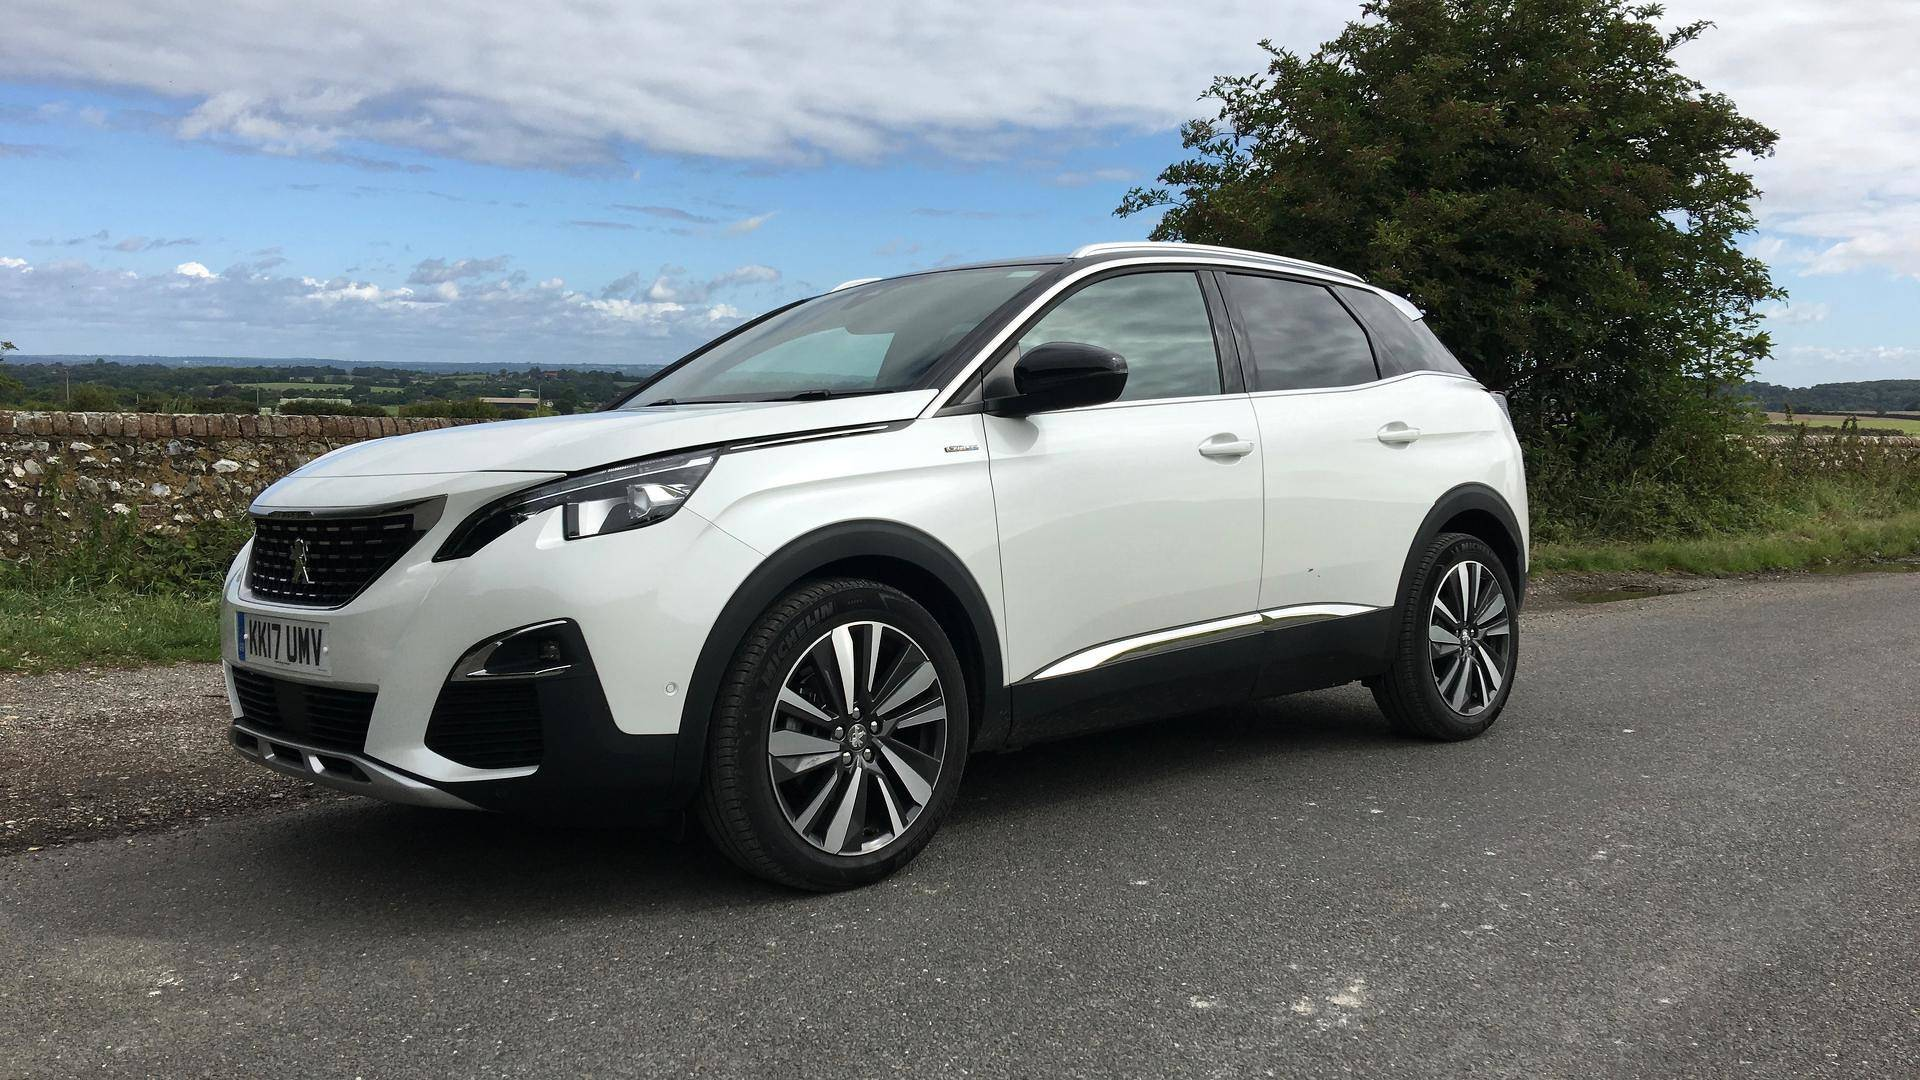 Peugeot 3008 1 6 BlueHDI GT Line: Living with it